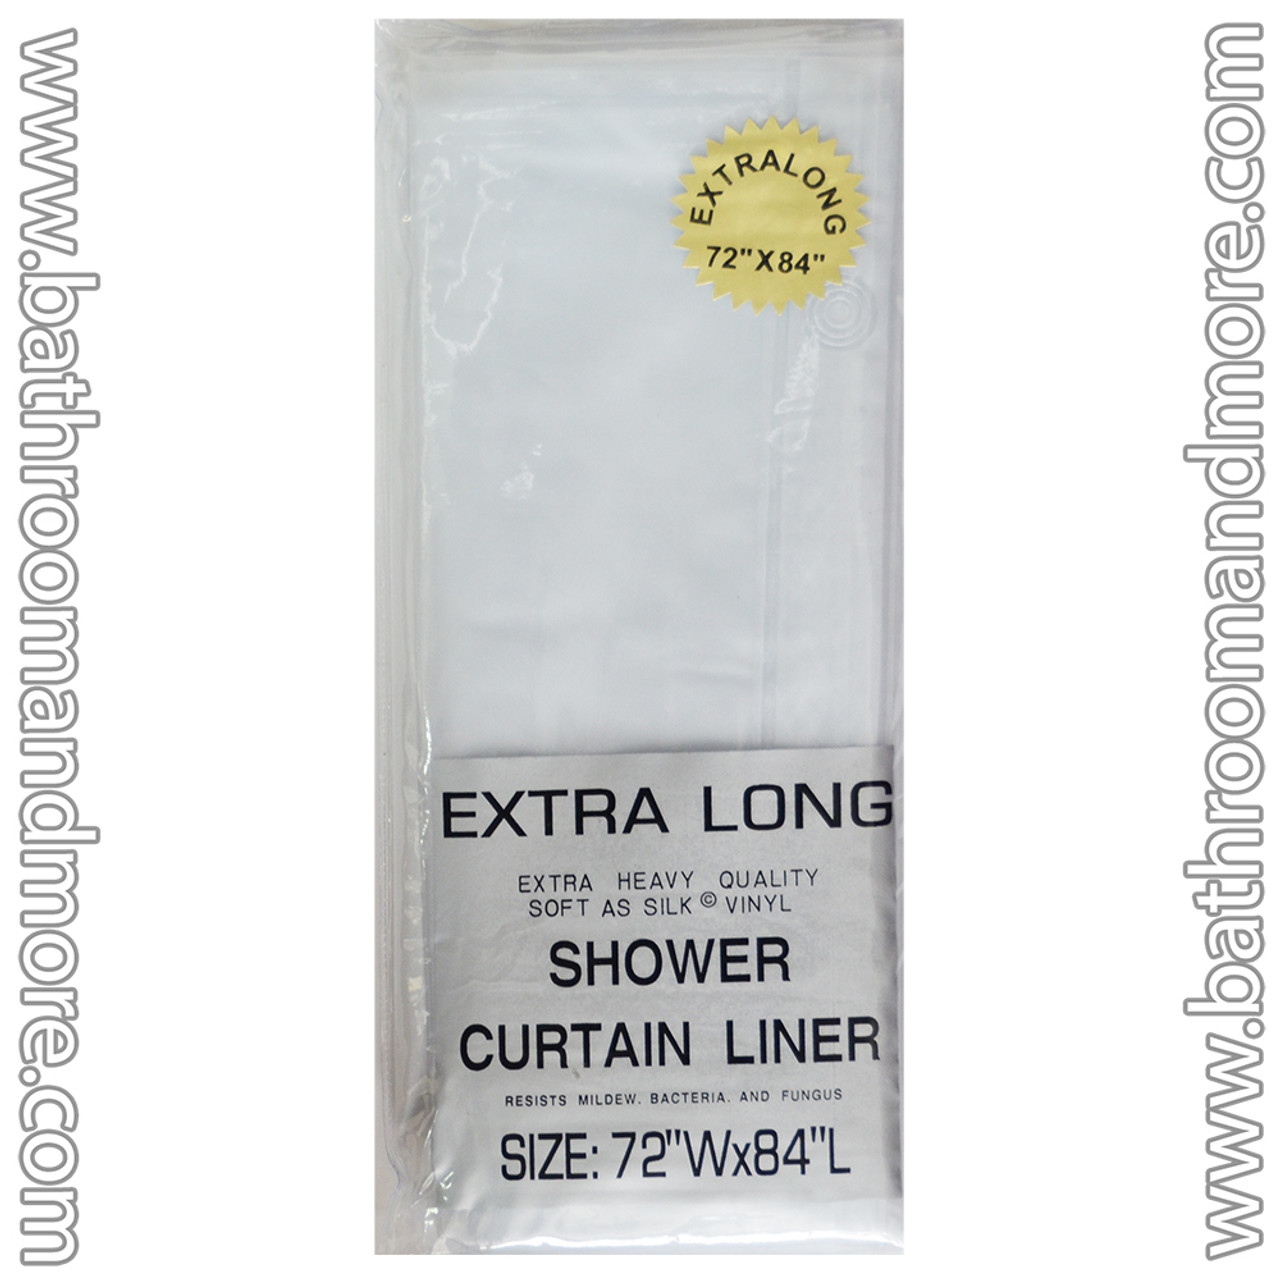 frosty clear vinyl shower curtain liner extra long 72 x 84